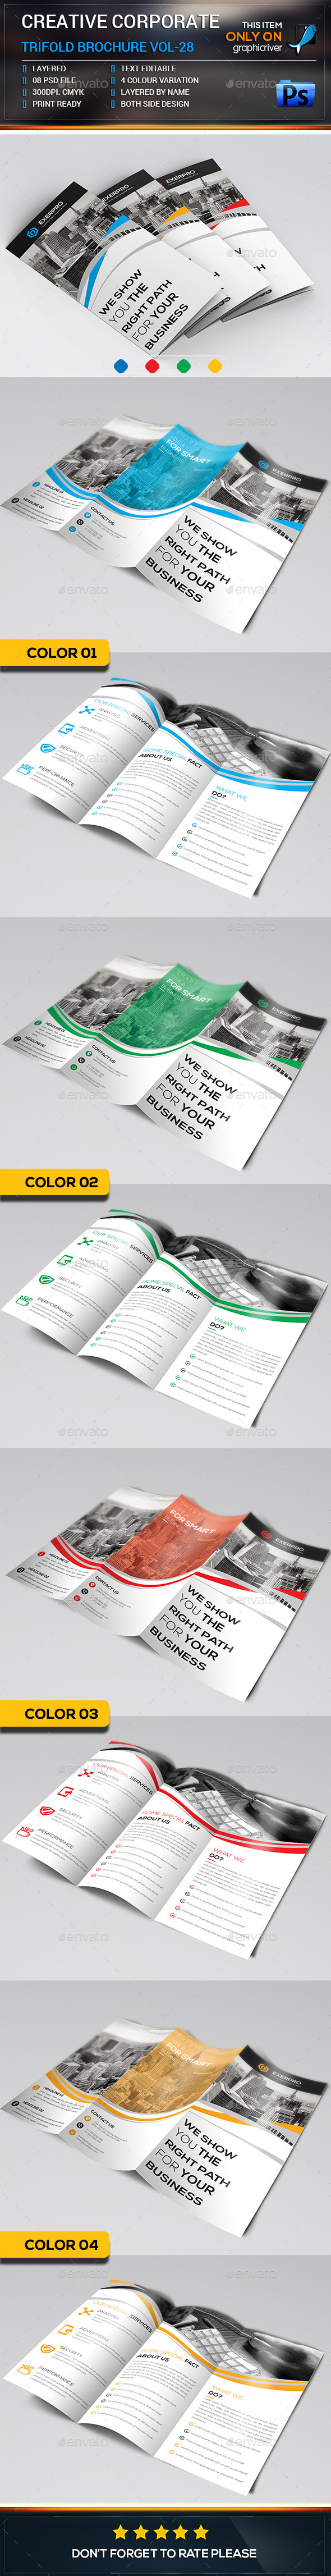 Creative Corporate Trifold Brochure Template - Brochures Print Templates